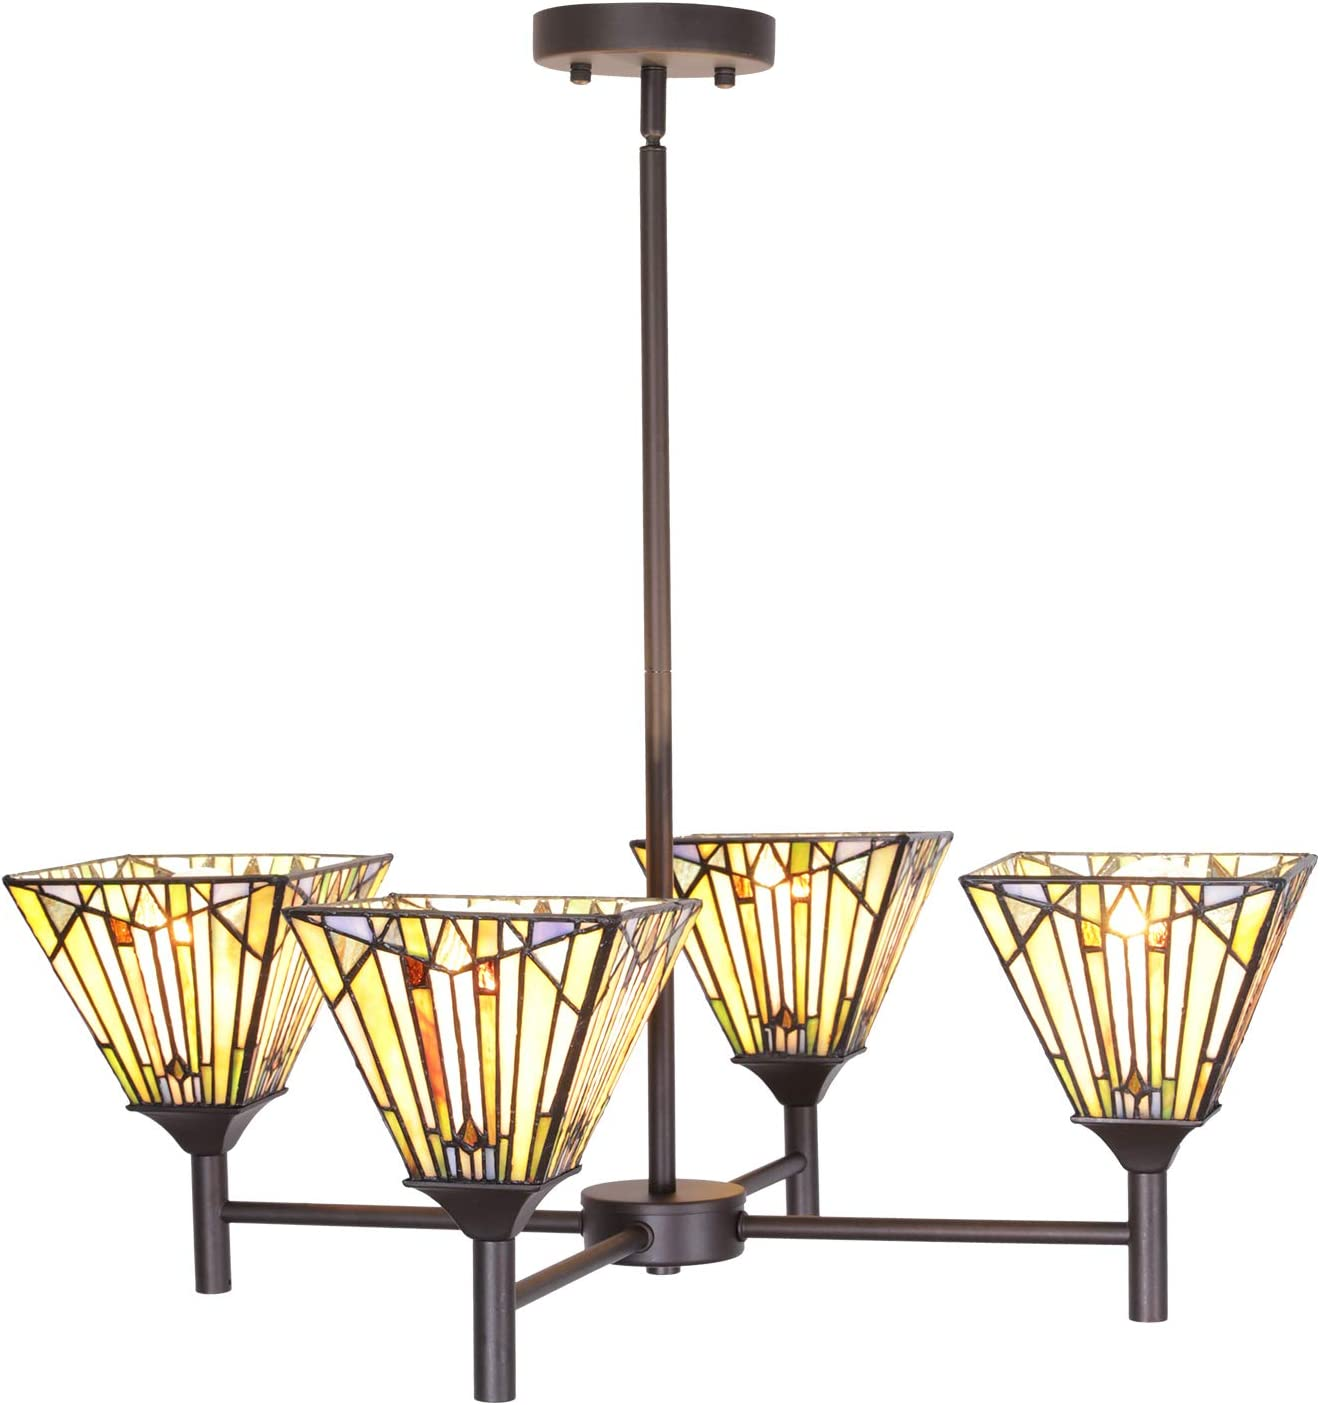 VINLUZ Tiffany Chandeliers 4 Light Stained Glass Shade Kitchen Island Pendant 6-inch, Traditional Retro Ceiling Light Fixtures Hanging for Dining Room Living Room Bedroom